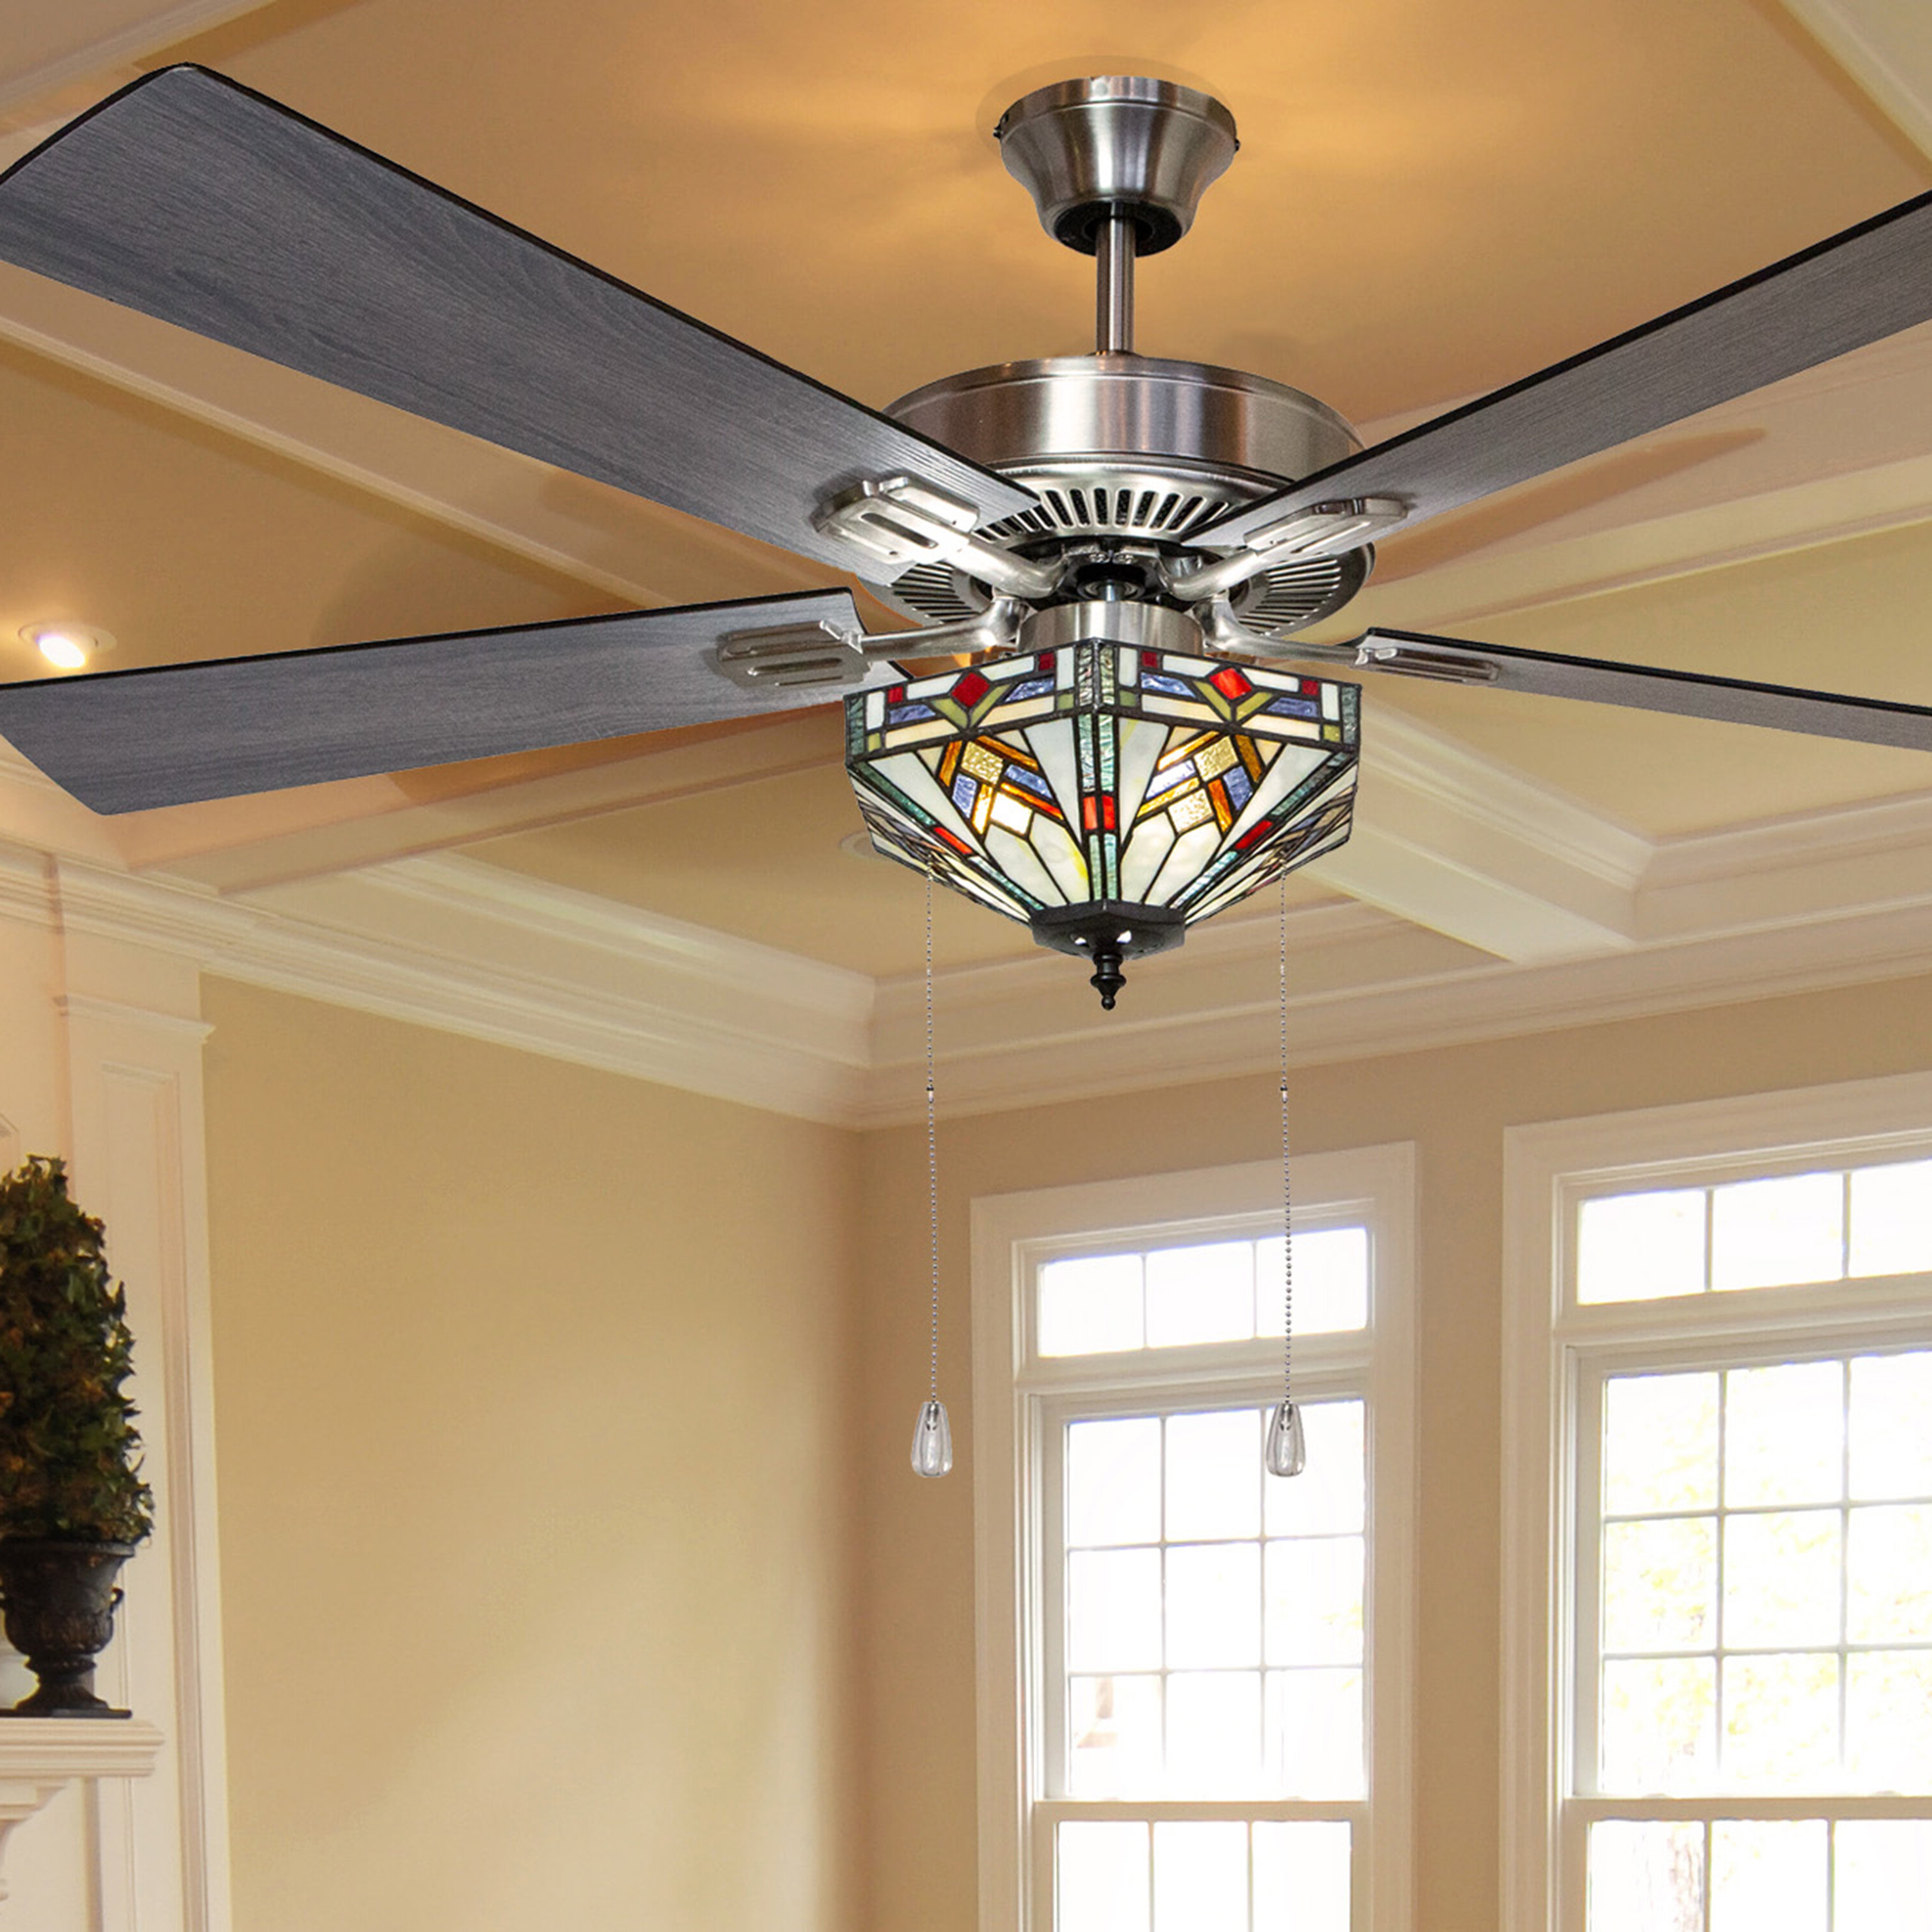 """Norah 5 Blade Ceiling Fans With Regard To Preferred 52"""" Londono Bungalow Mission Glass 5 Blade Ceiling Fan With Remote, Light  Kit Included (View 13 of 20)"""